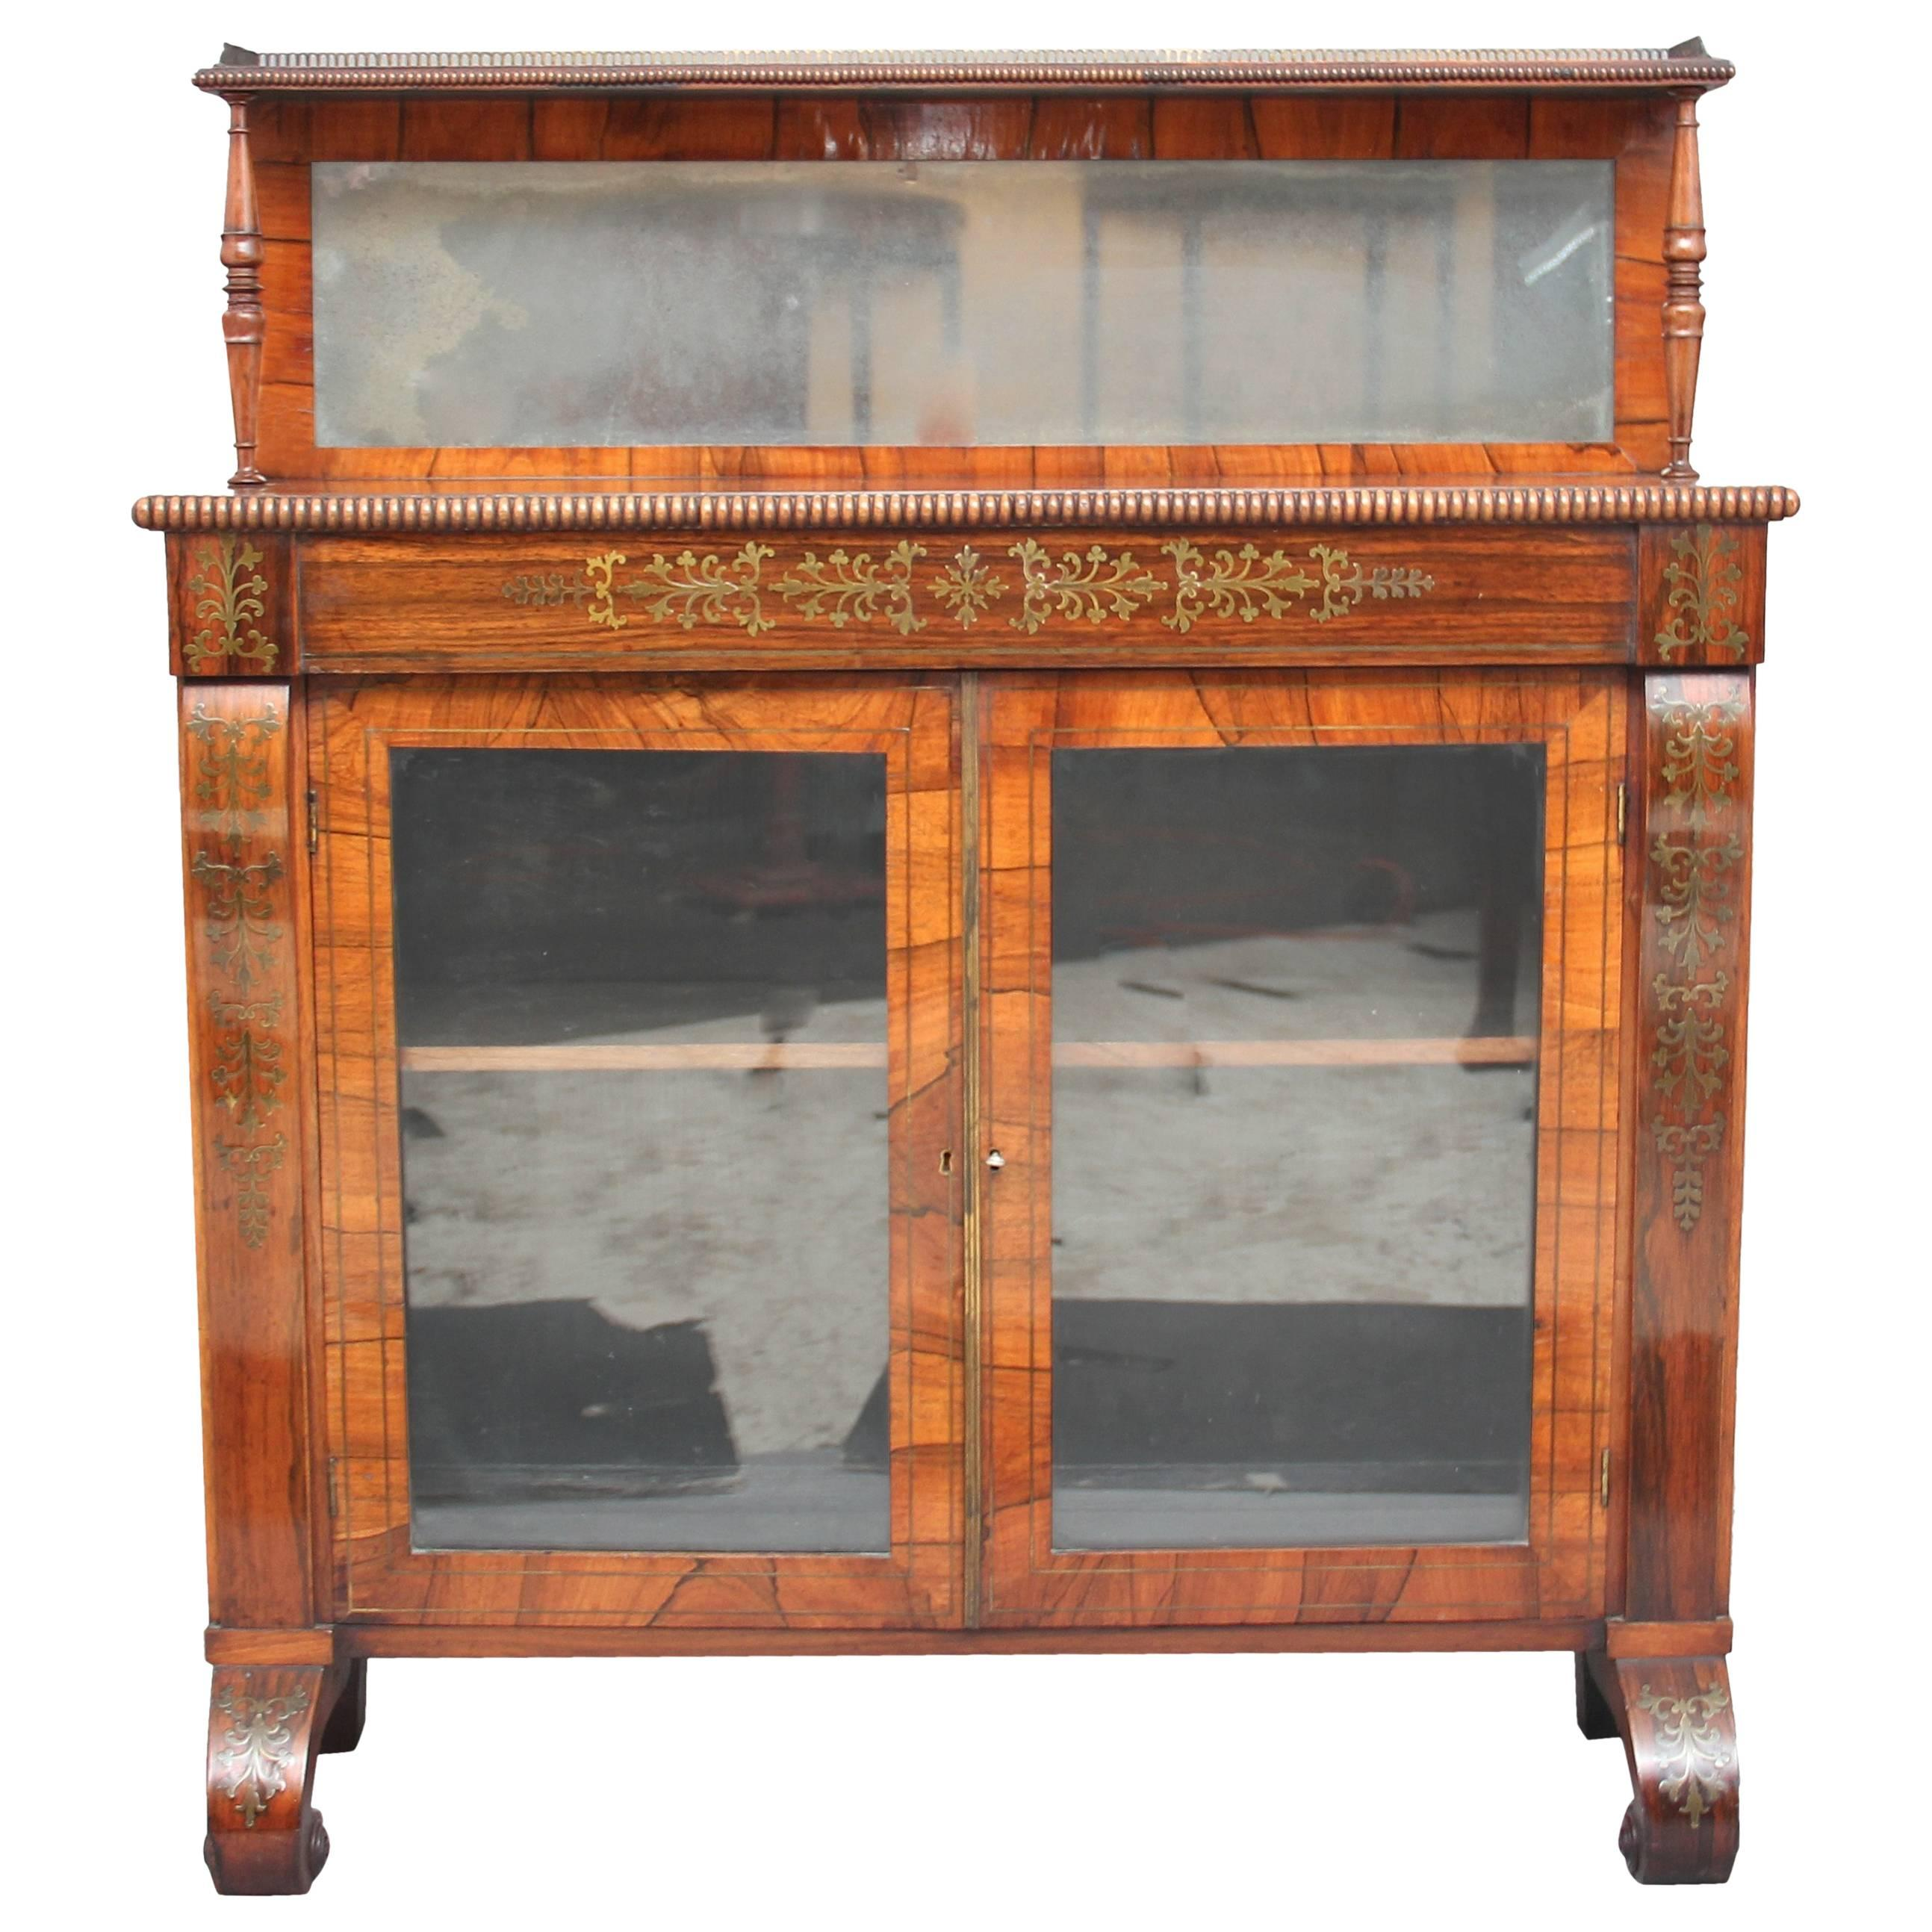 Regency Rosewood and Brass Inlaid Chiffonier